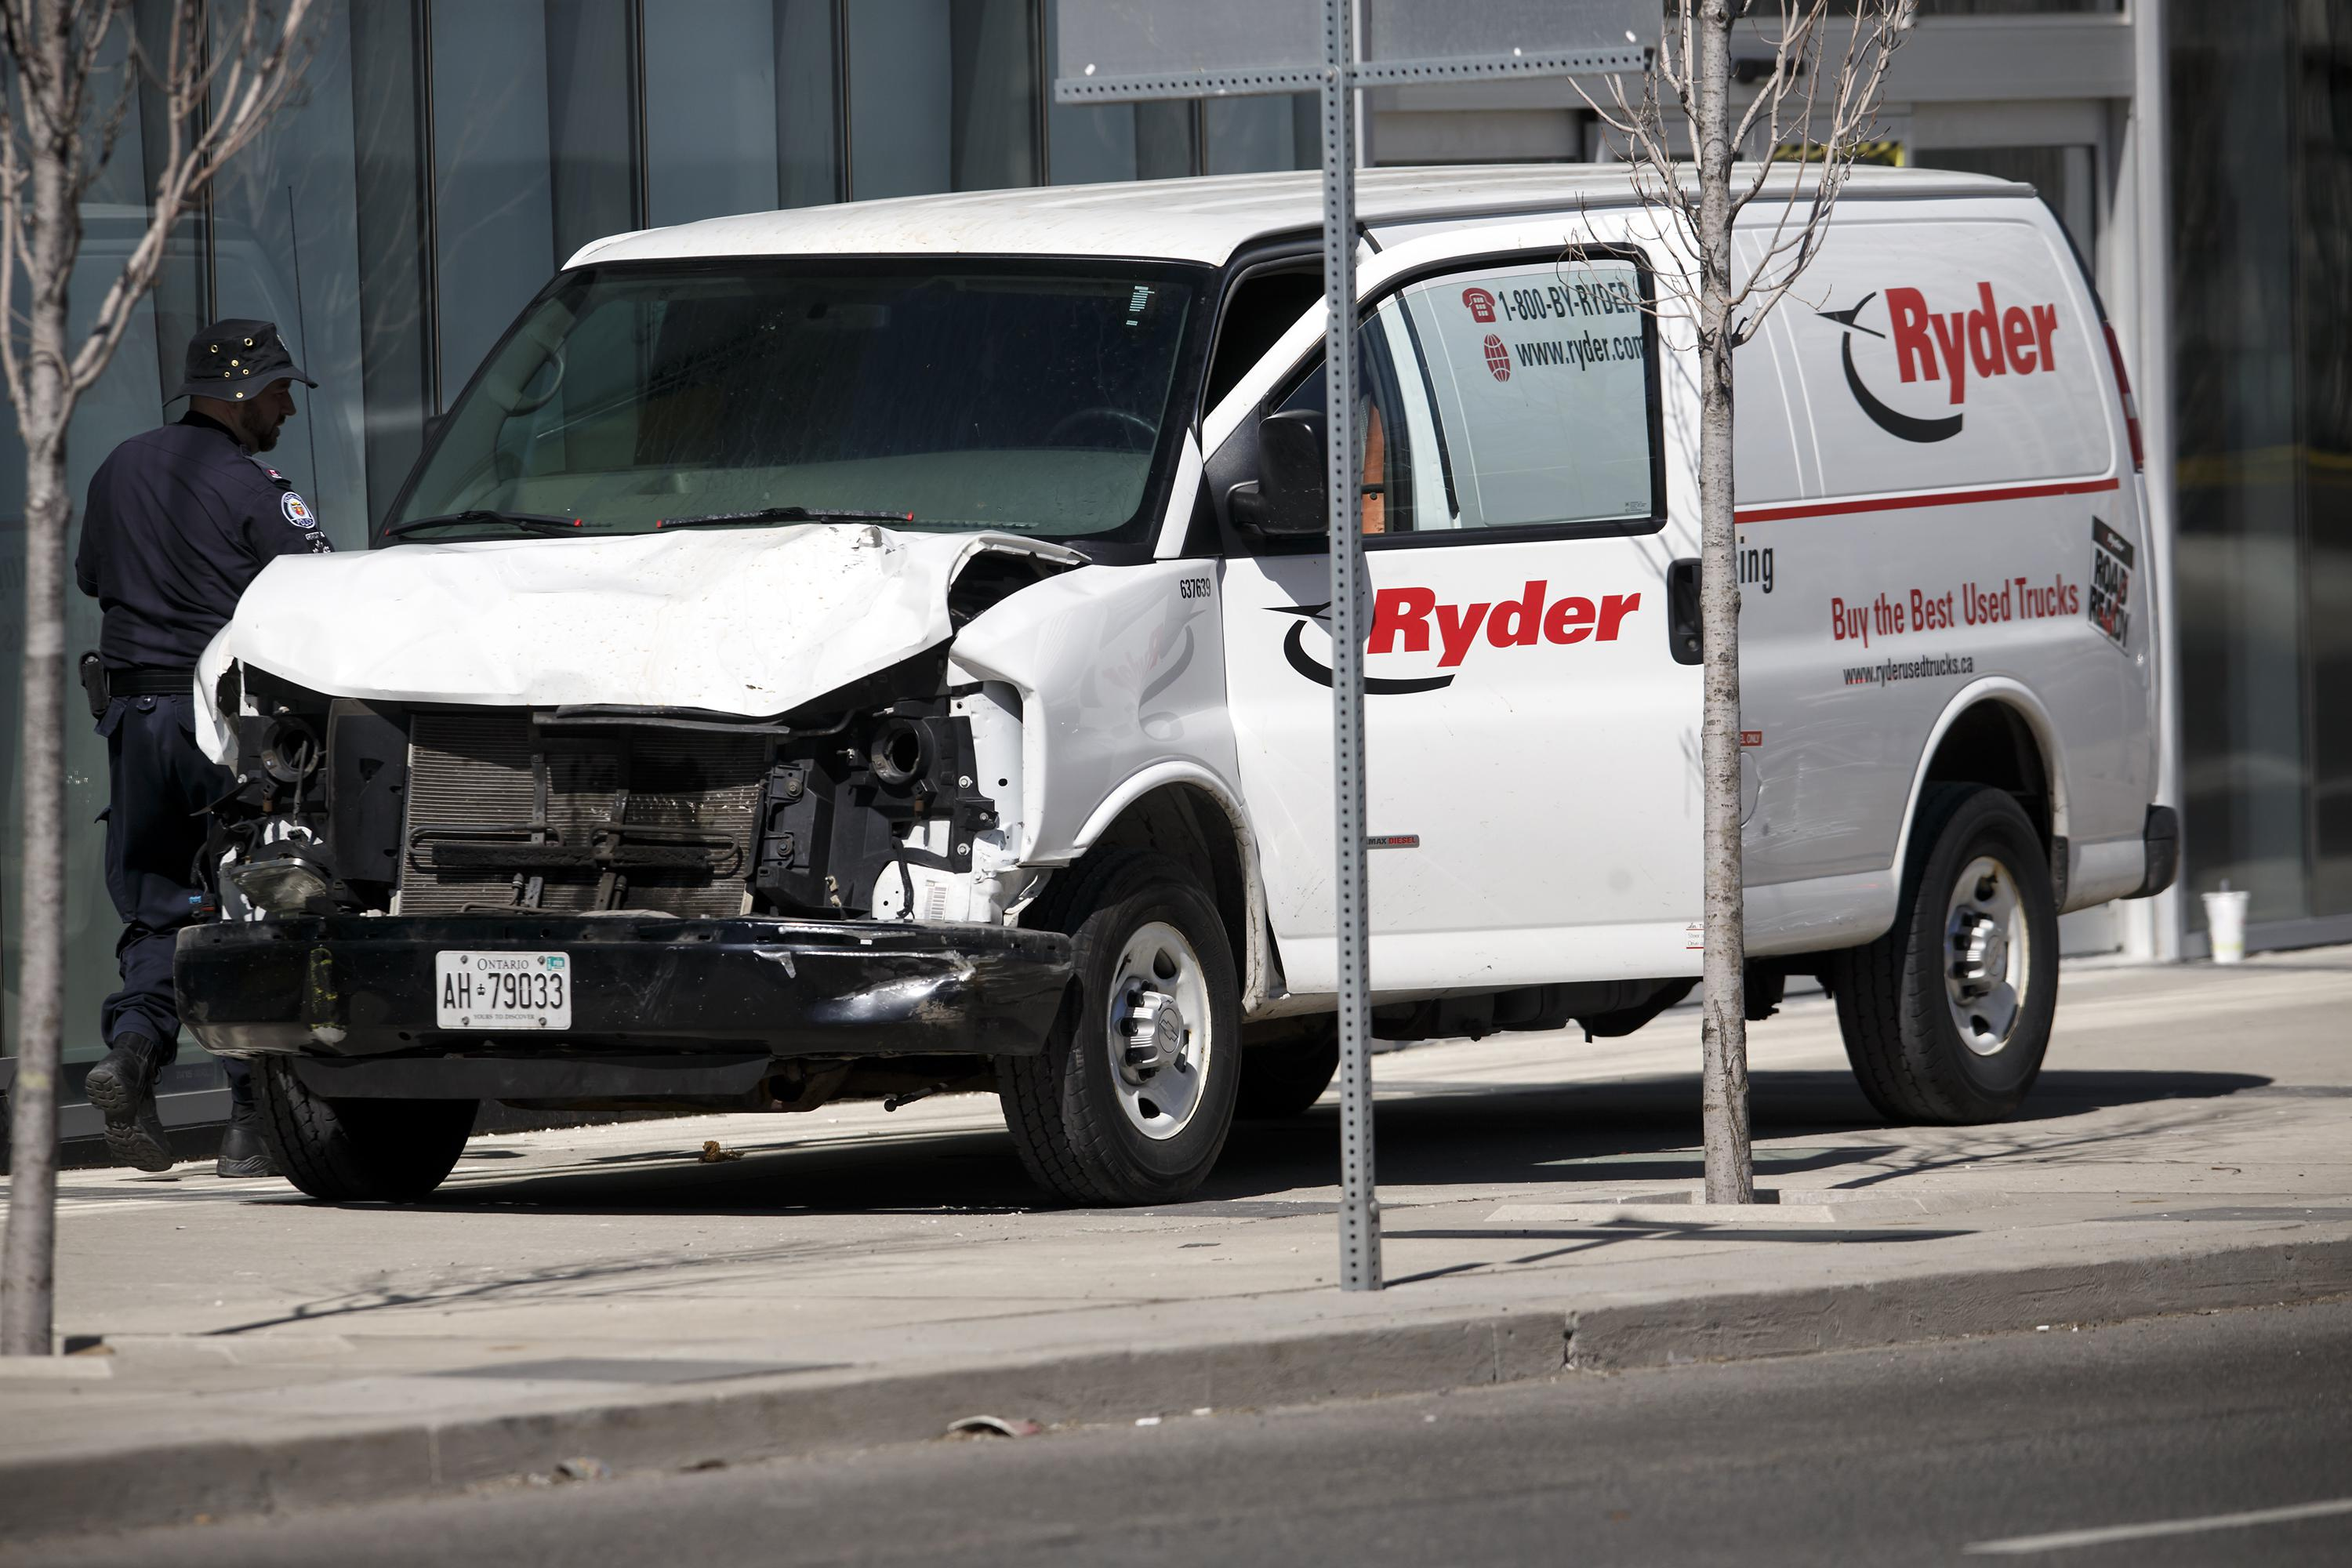 TORONTO, ON - APRIL 23:  Police inspect a van suspected of being involved in a collision injuring at least eight people at Yonge St. and Finch Ave. on April 23, 2018 in Toronto, Canada. A suspect is in custody after a white van collided with multiple pedestrians. (Photo by Cole Burston/Getty Images)